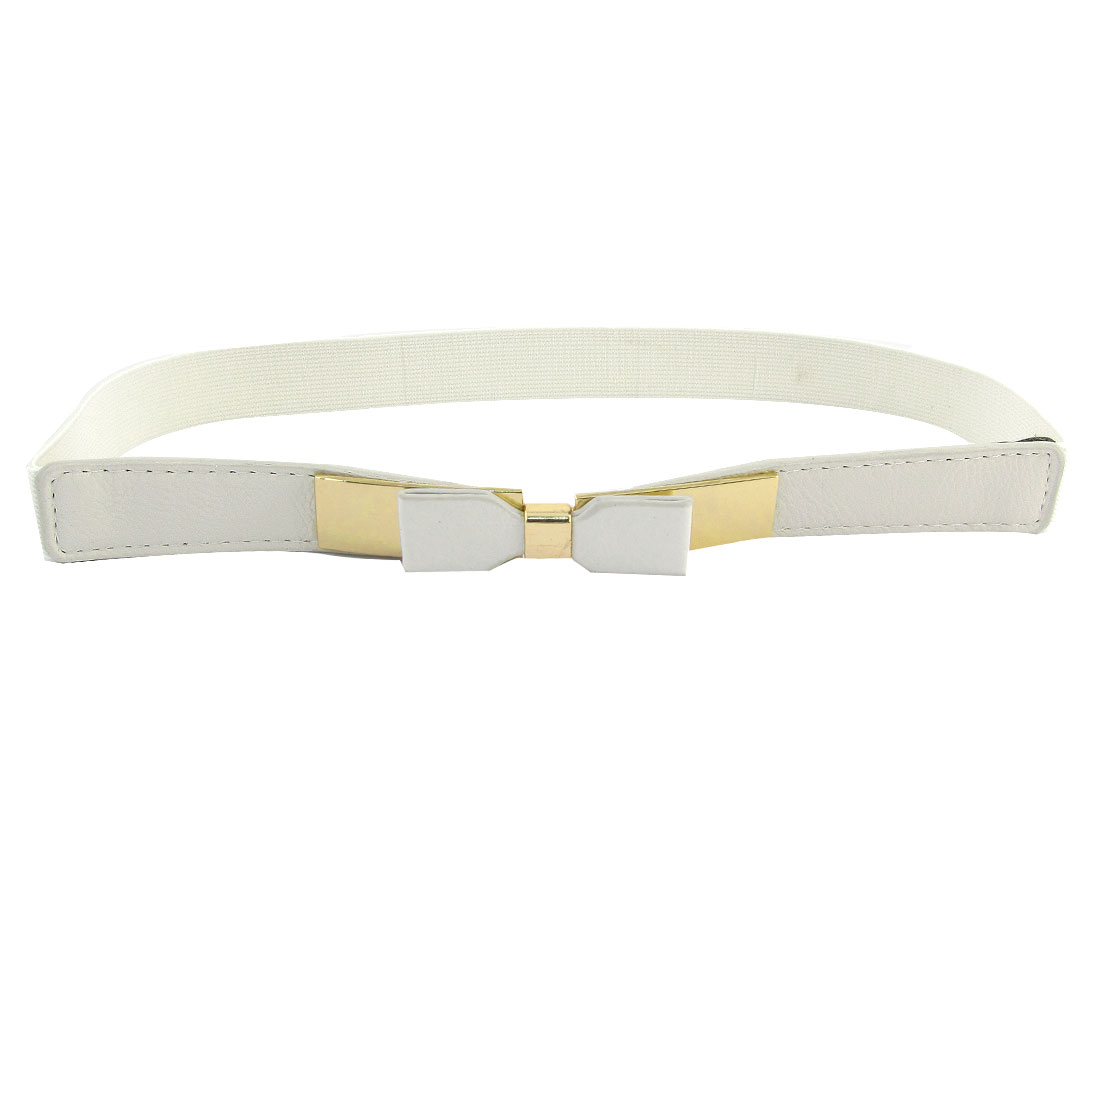 Women Rectangle Shaped Metal Interlocking Buckle Stretchy Silm Waist Belt White